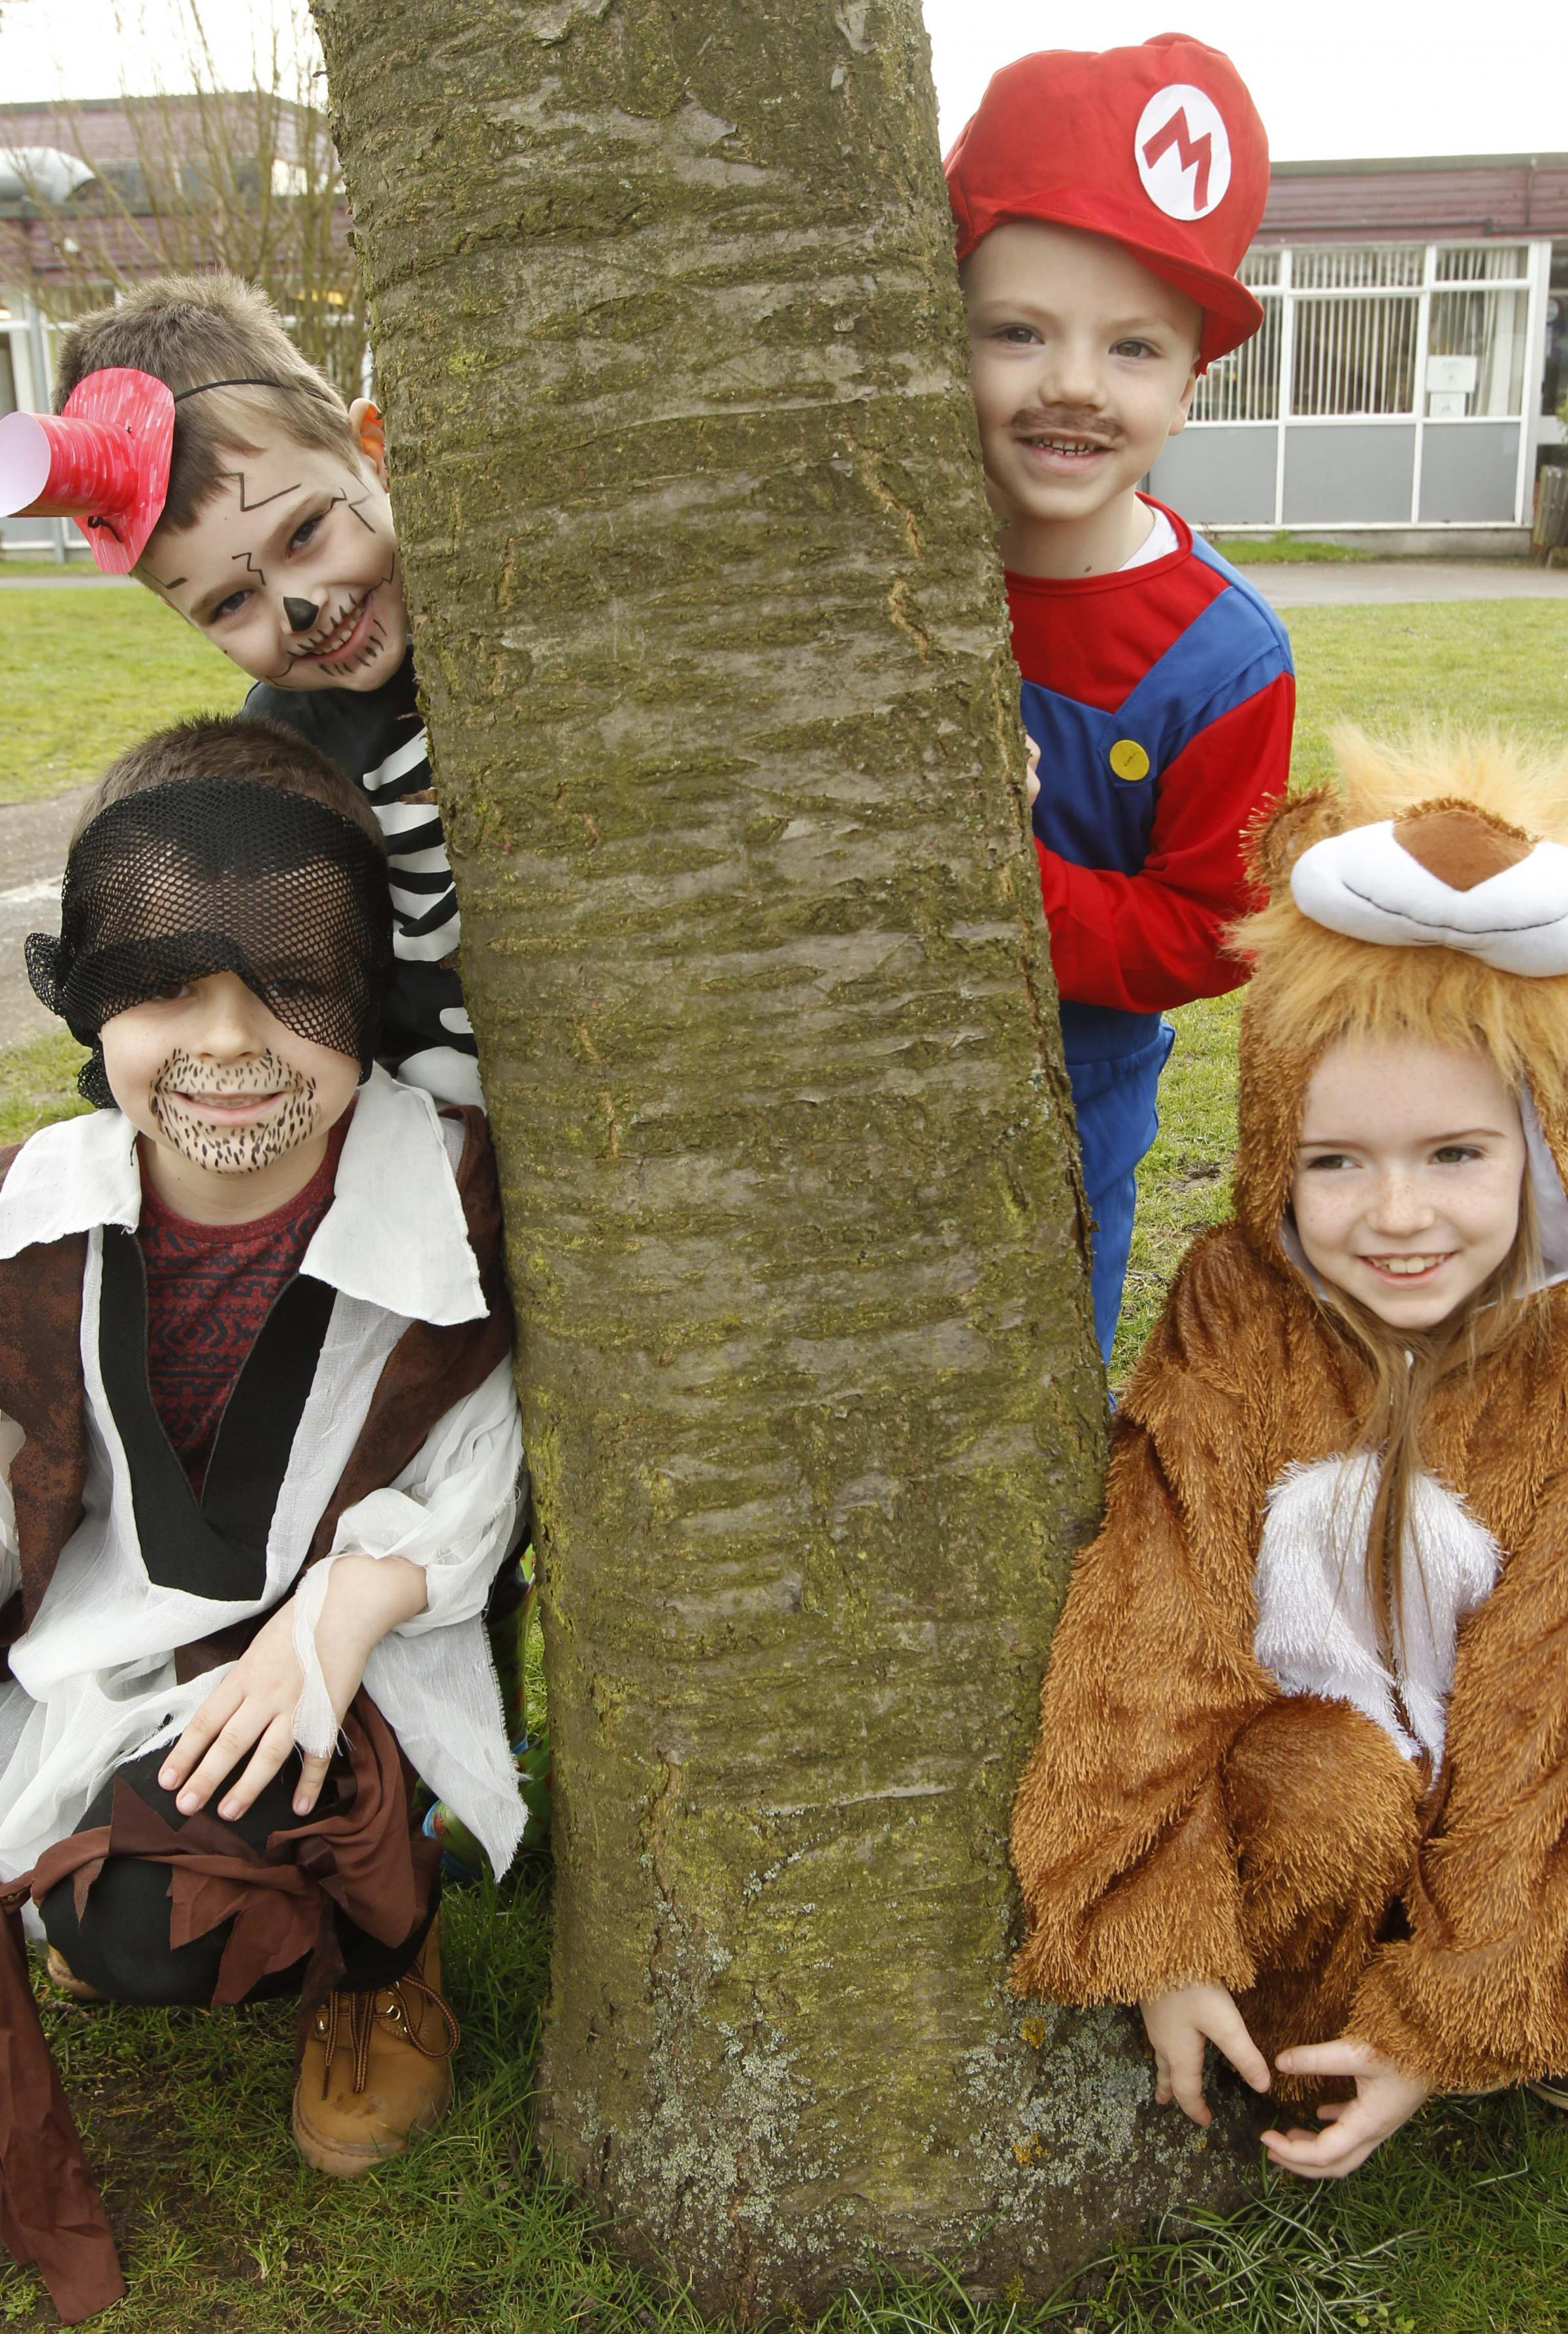 Kian Draper, Thomas Hicks, Lucas Mander, and Daisy Dance from St Andrews Primary School